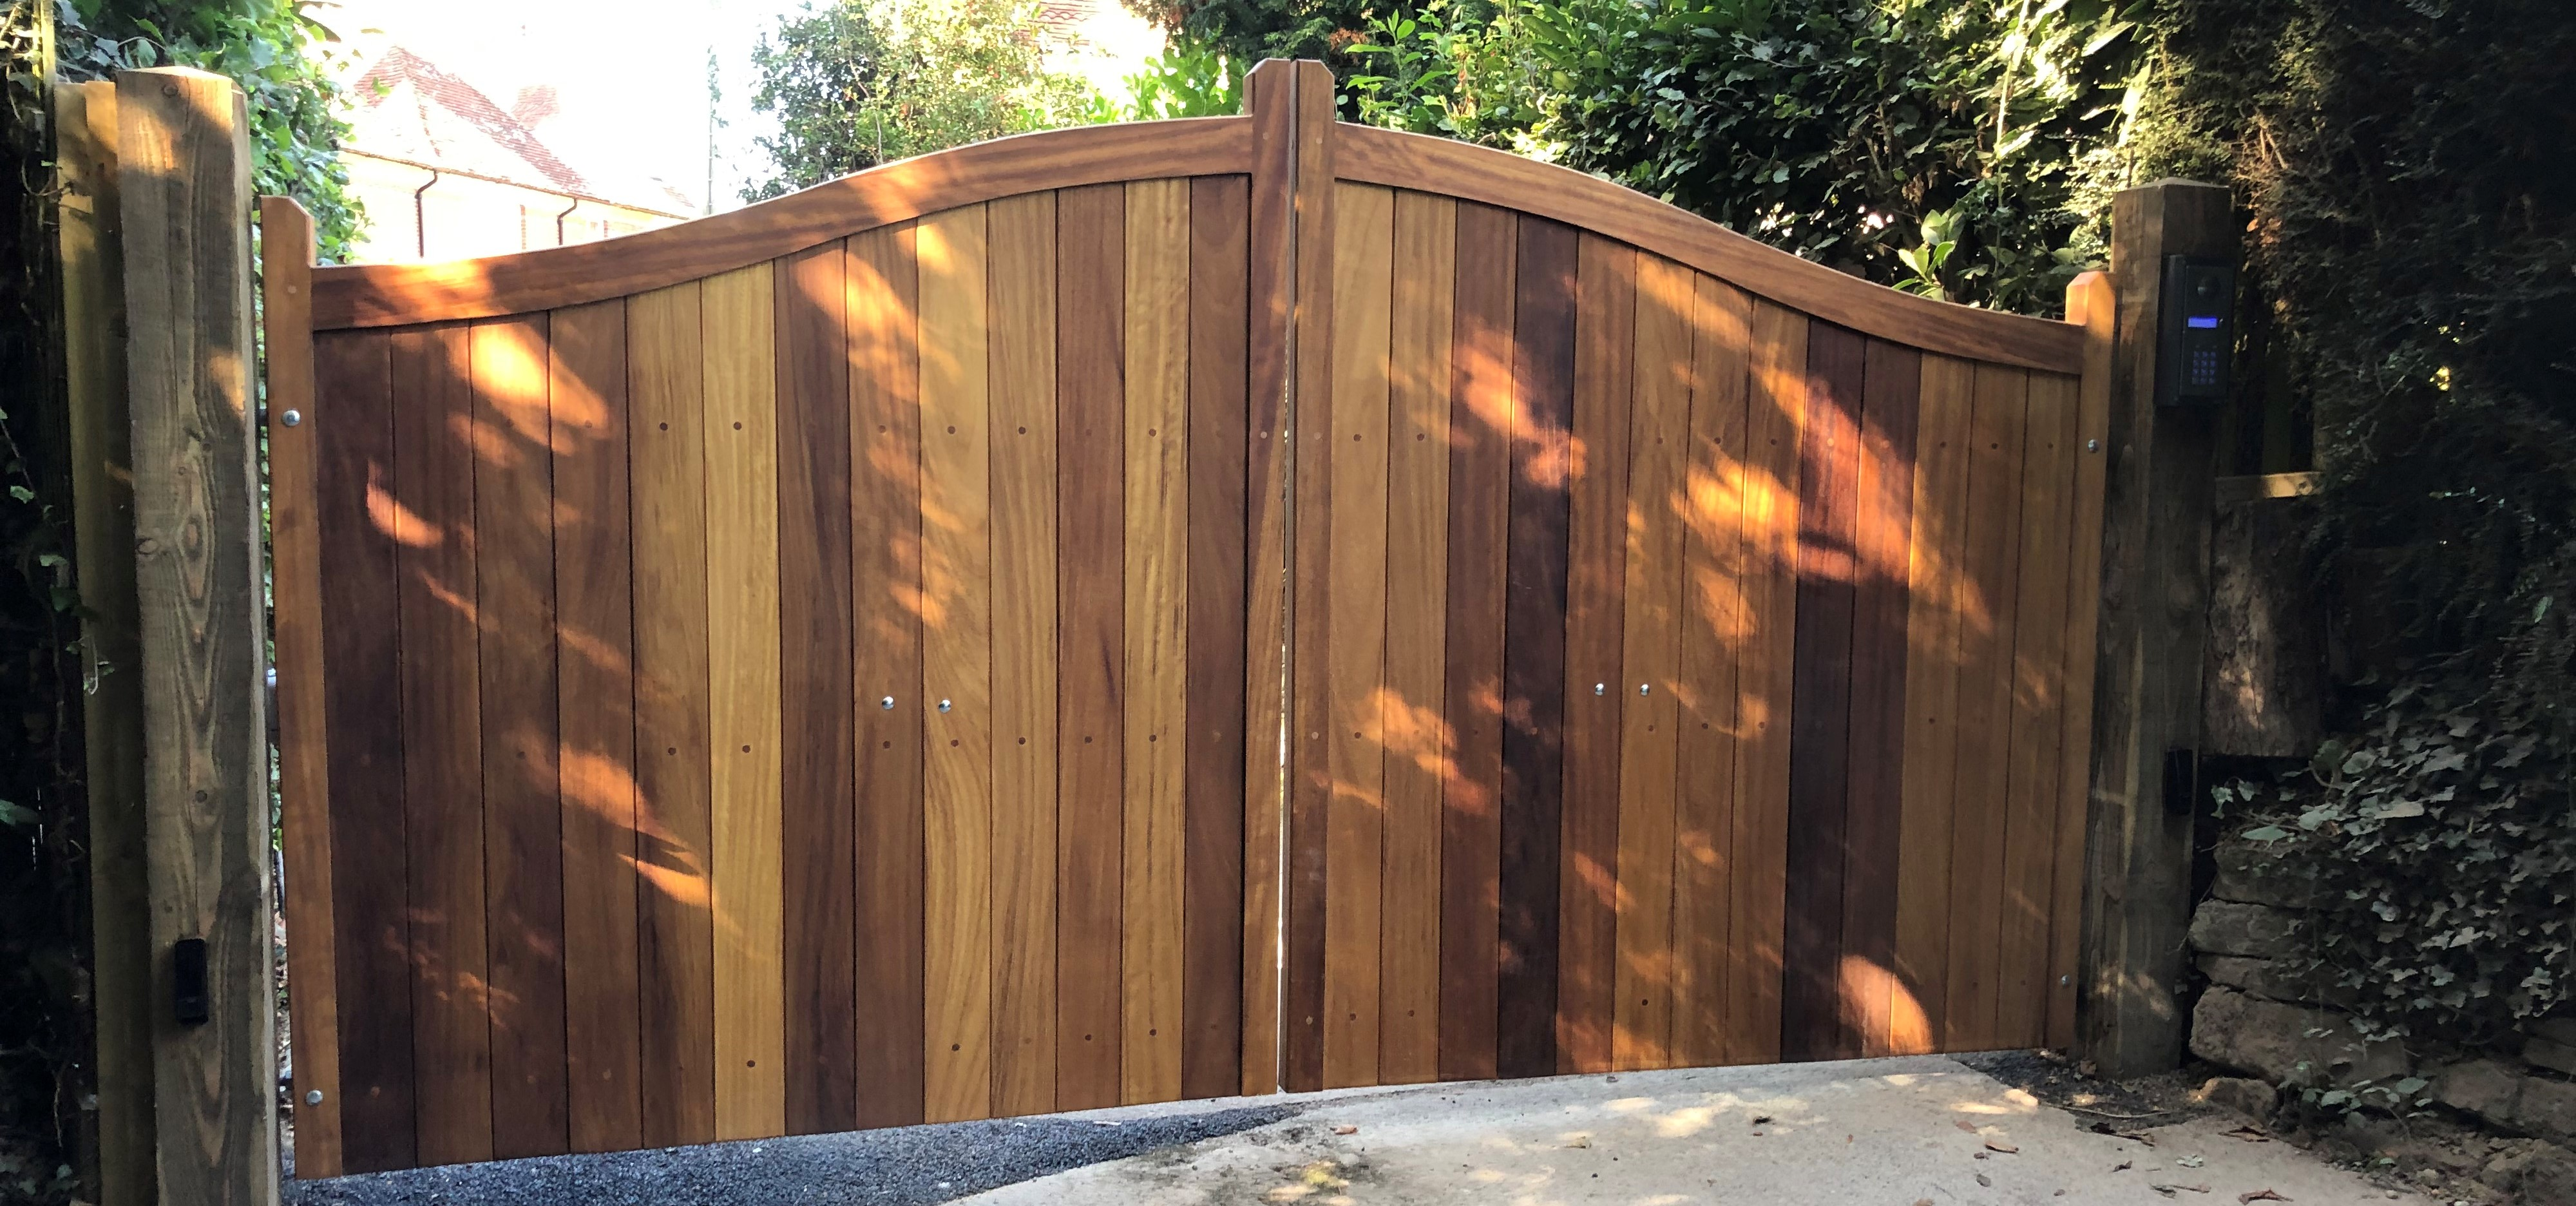 New Electric Gates For the Old Rectory